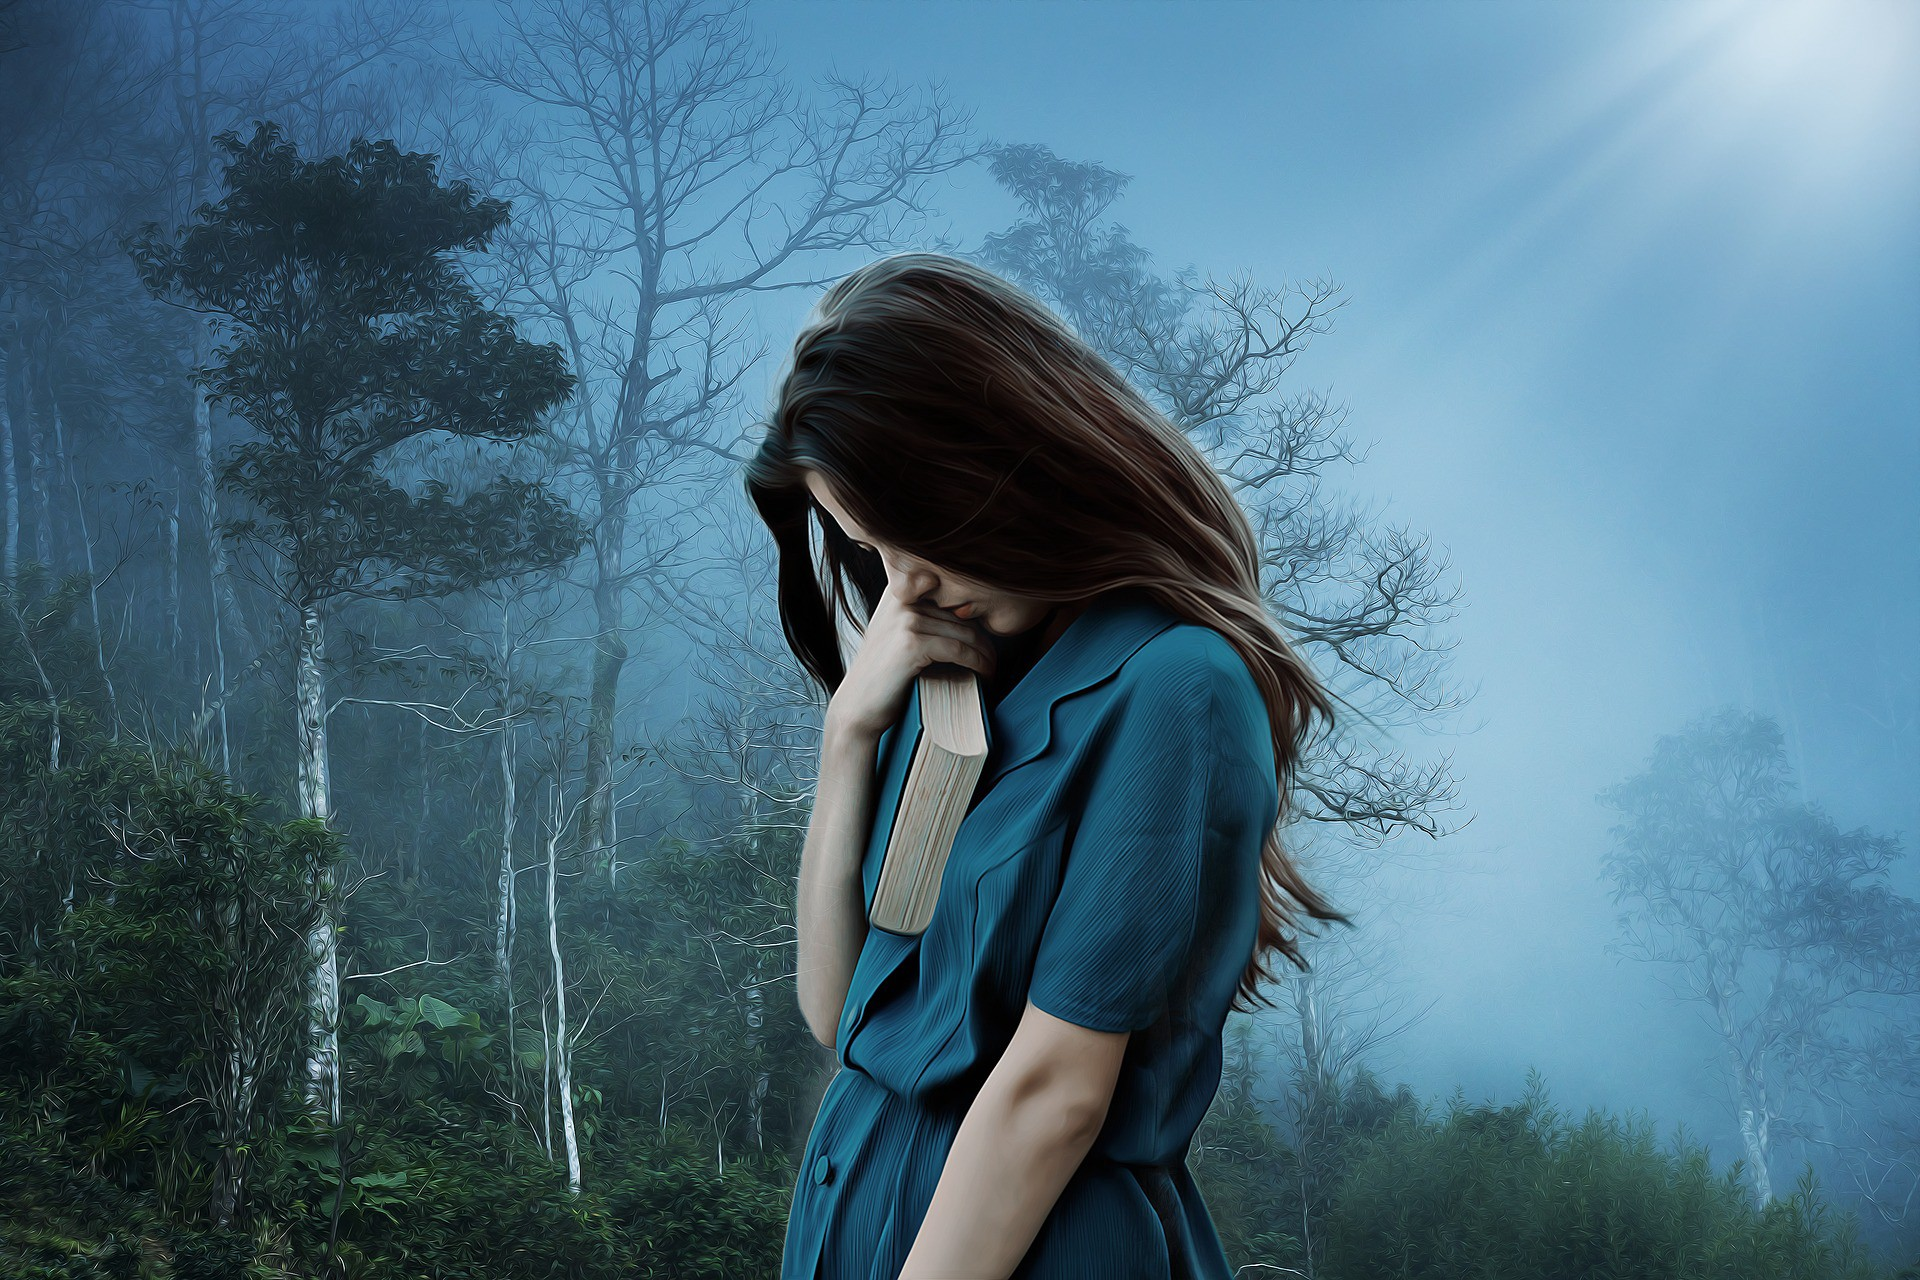 A woman looking down with her face obscured by hair. She is holding a book. The background is a dark and foggy forest.